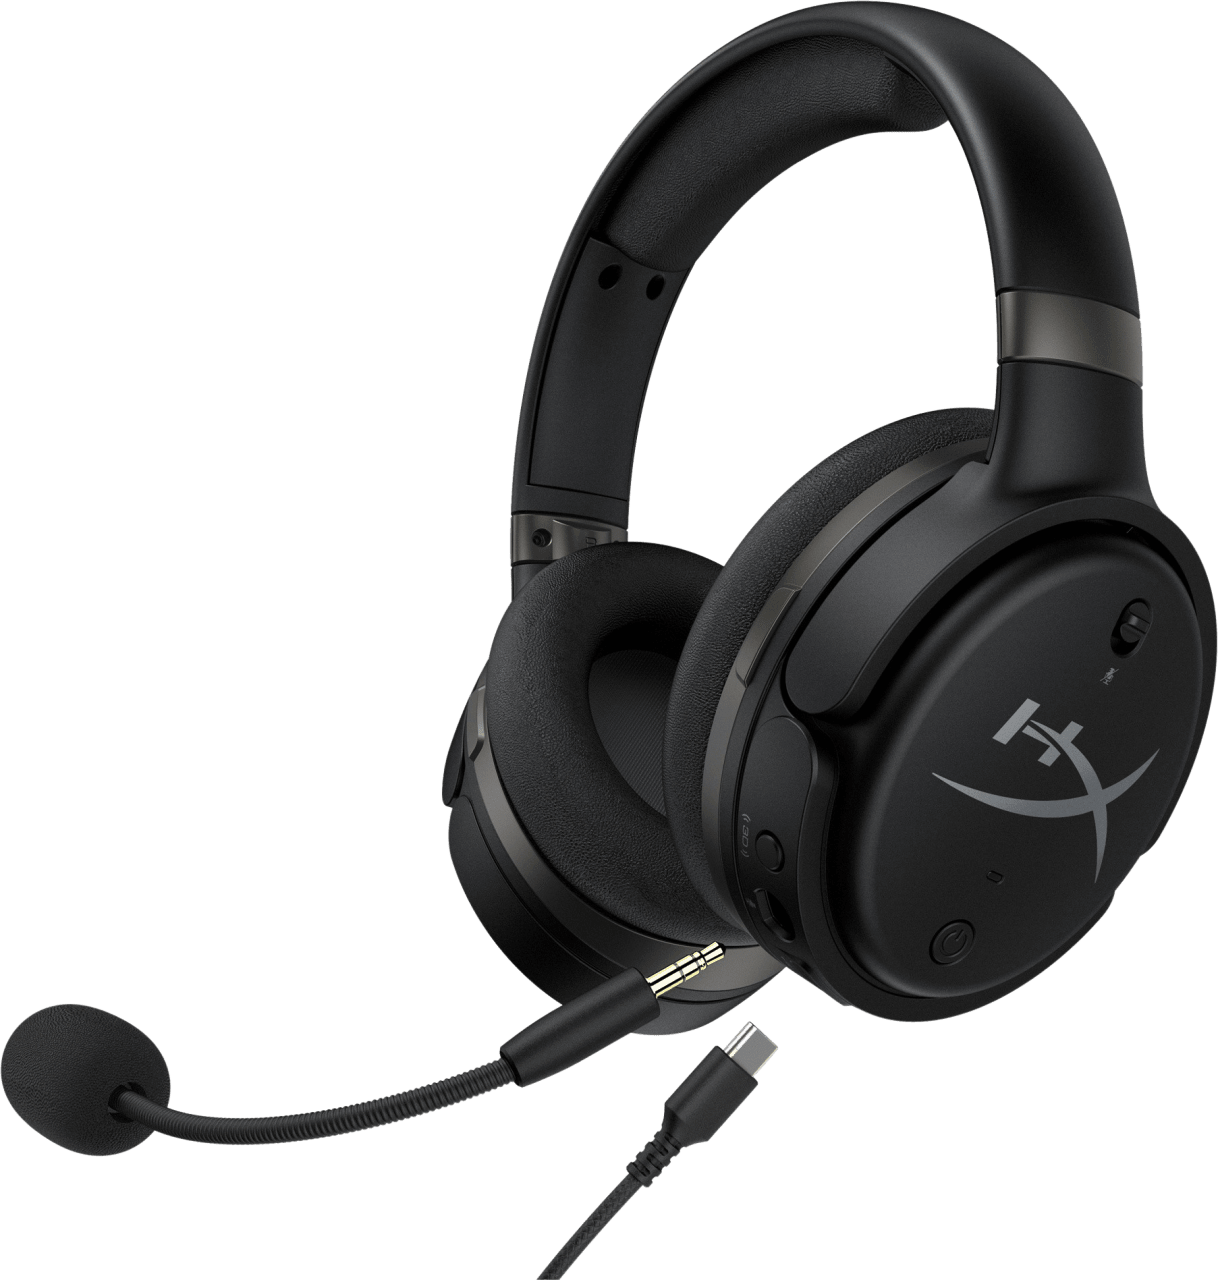 Black HyperX Cloud Orbit S Over-ear Gaming Headphones.1